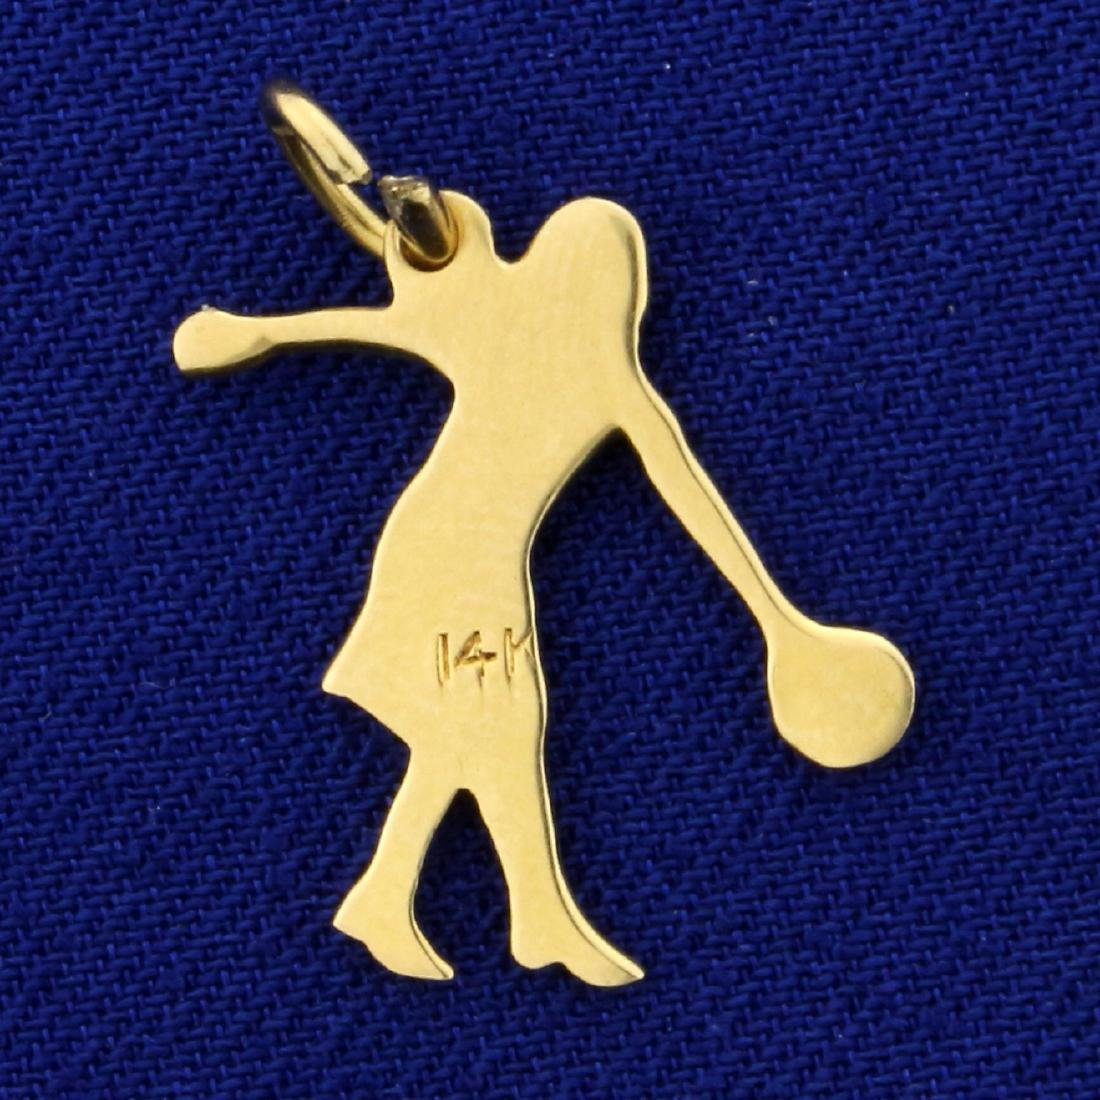 Woman Bowling Charm or Pendant in 14K Yellow Gold - 2